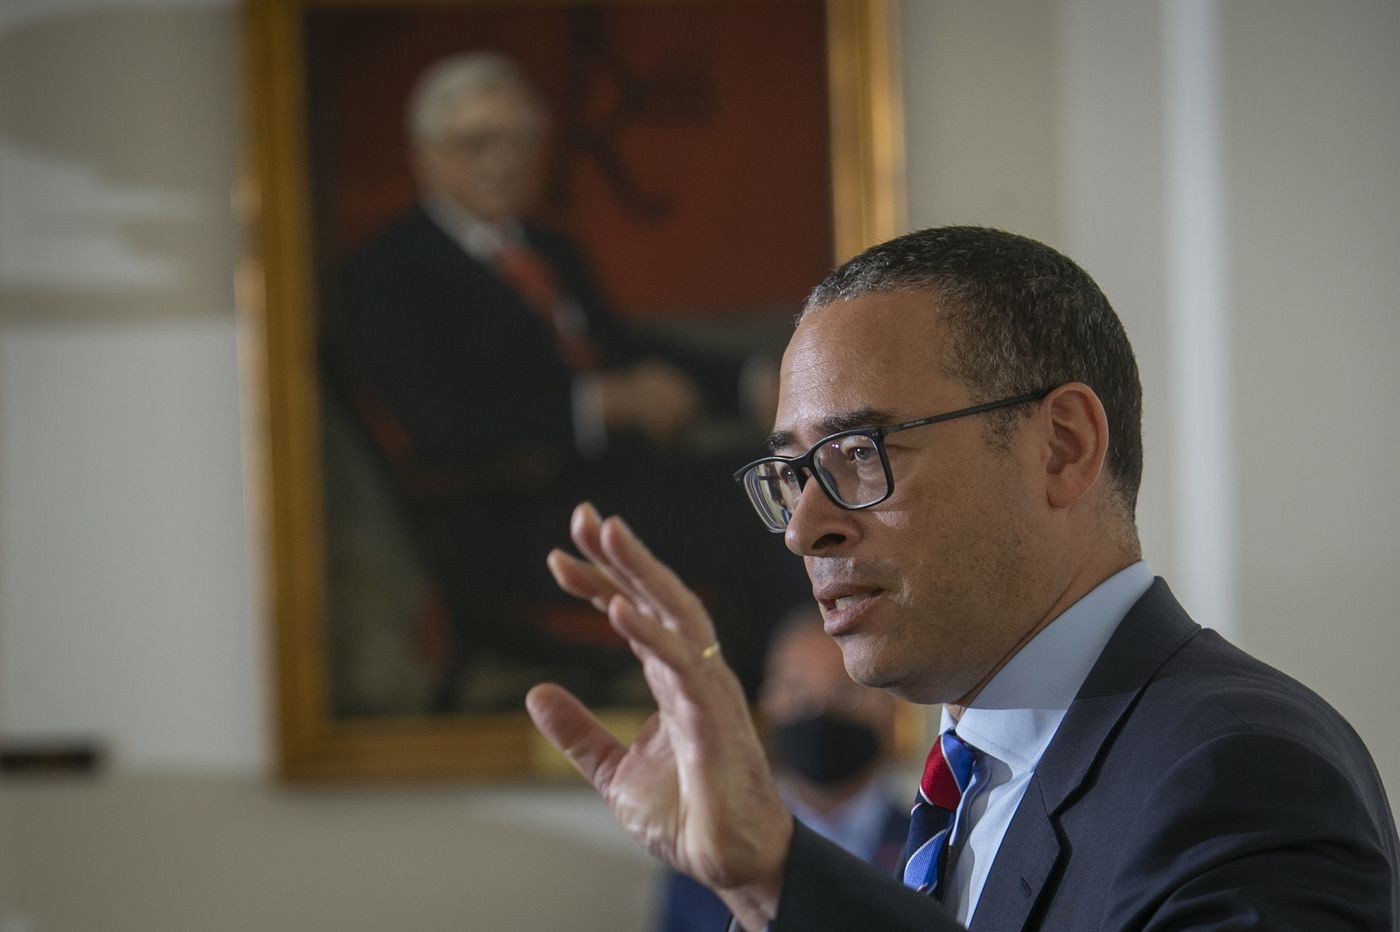 Coronavirus, racial reckoning, money woes: It's been quite a first week for Rutgers' new president